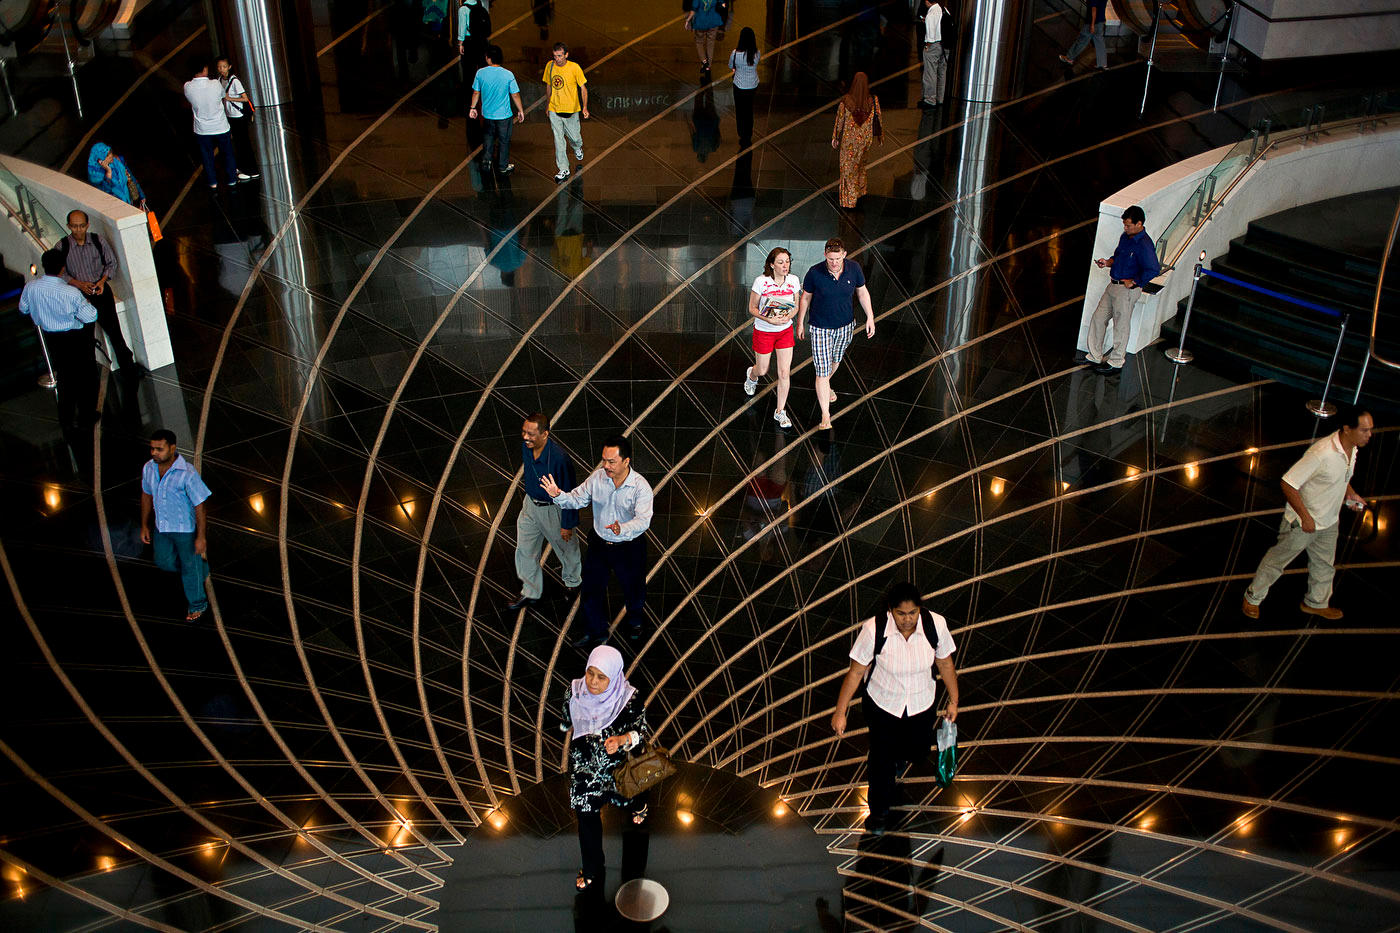 Petronas Tower lobby, Kuala Lumpur :  DAILY LIFE; The Rich, the Poor & the Others : Viviane Moos |  Documentary Photographer